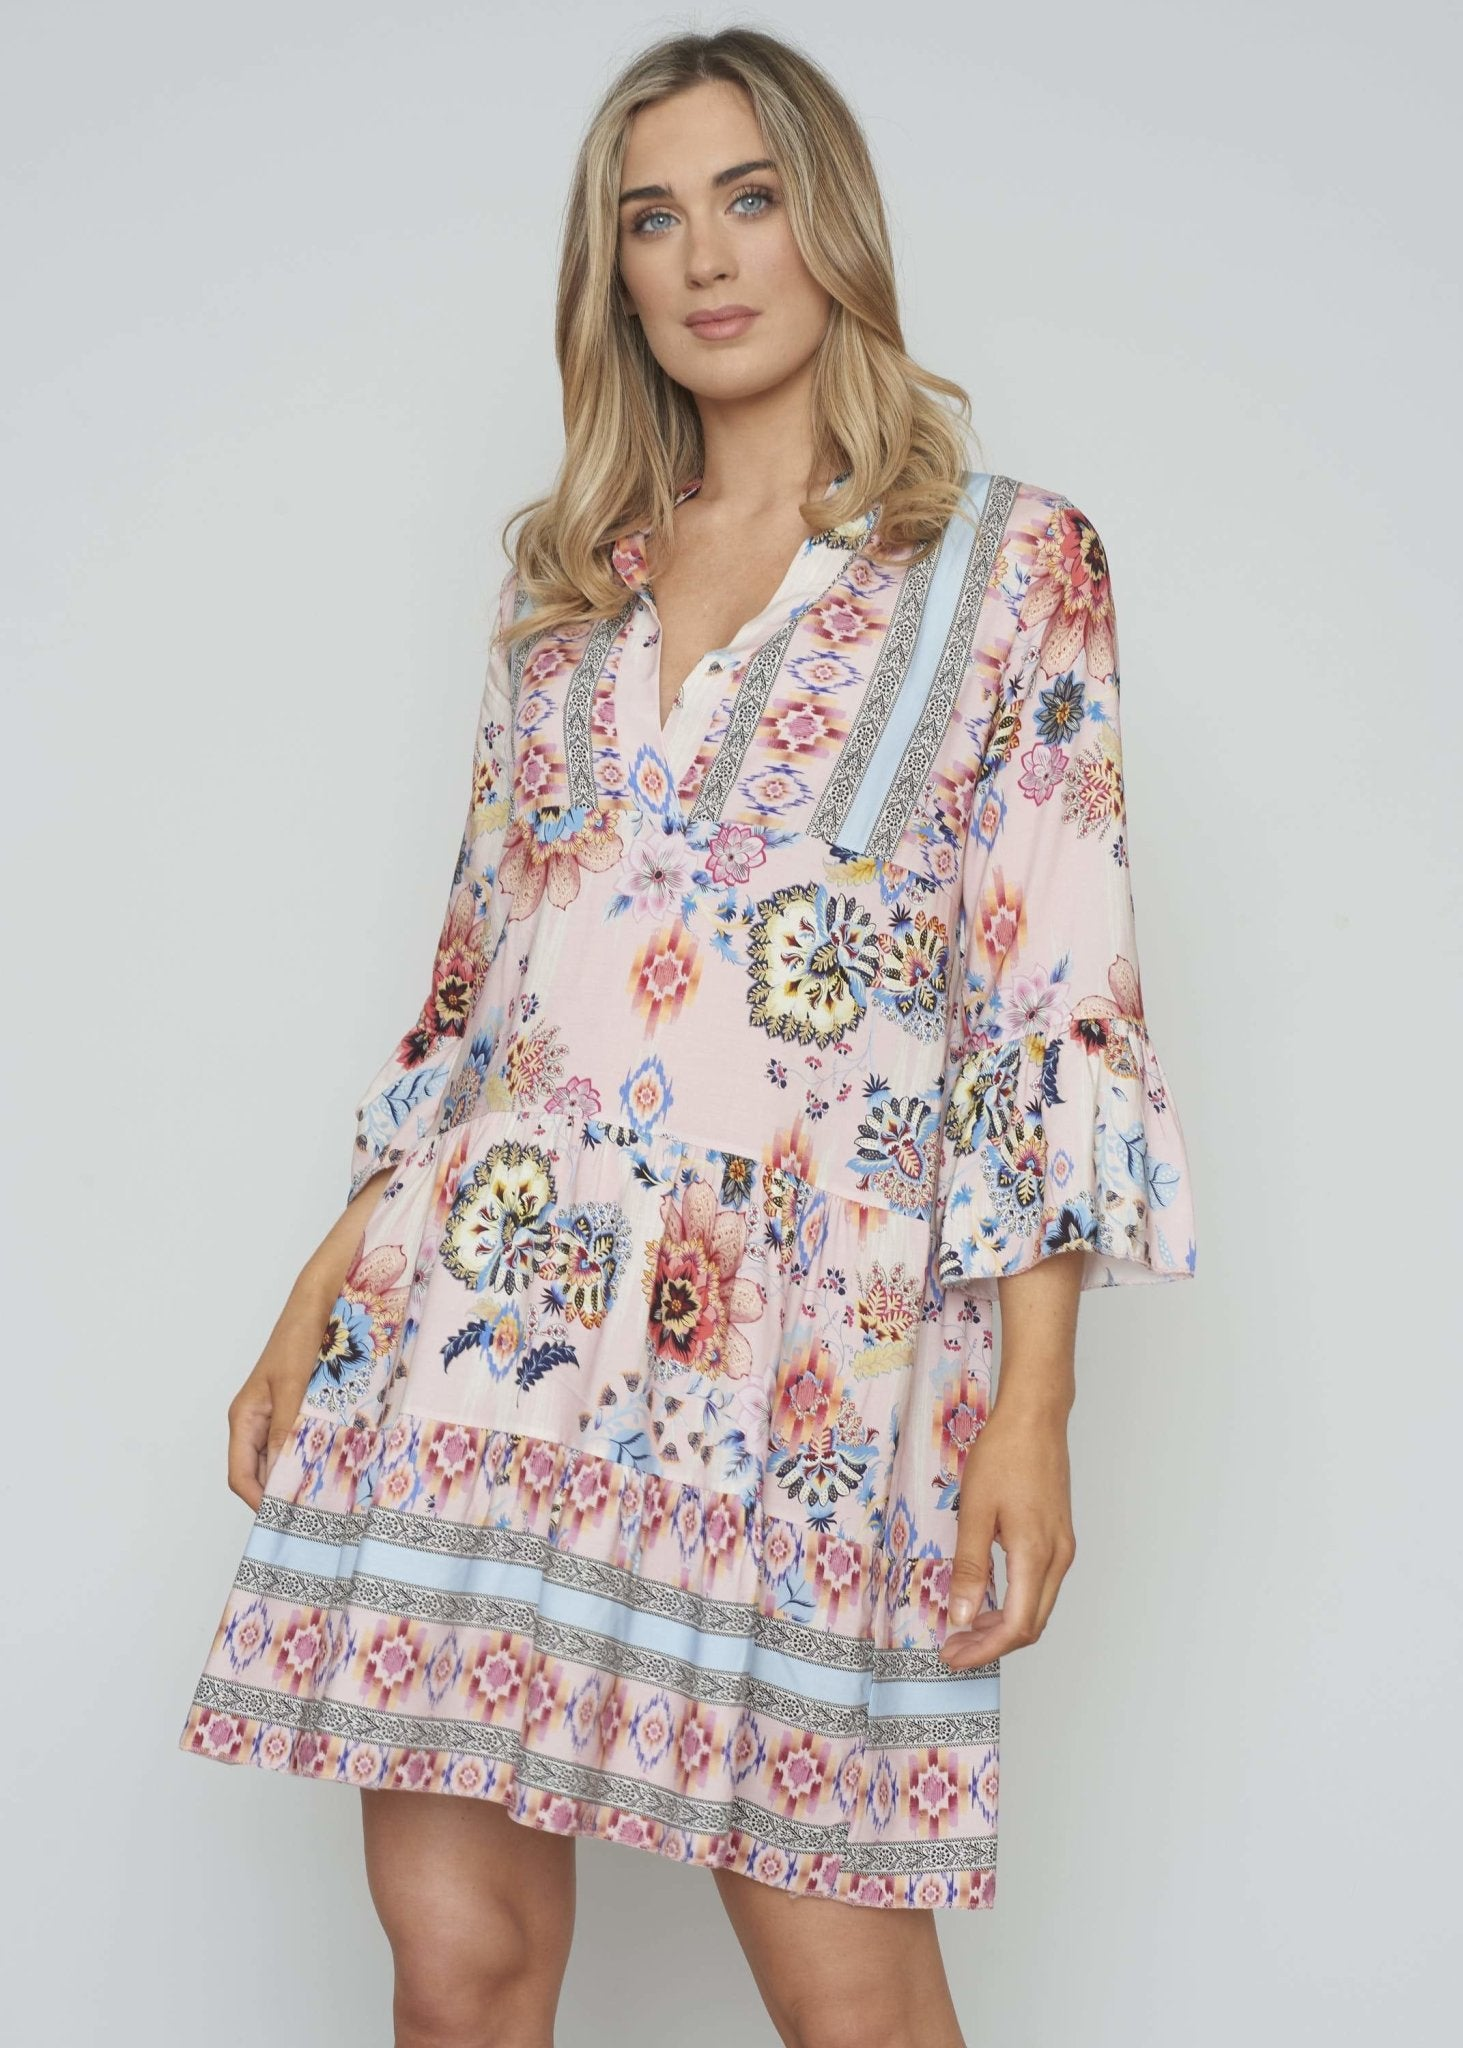 Marley Tiered Dress In Pink Mix - The Walk in Wardrobe